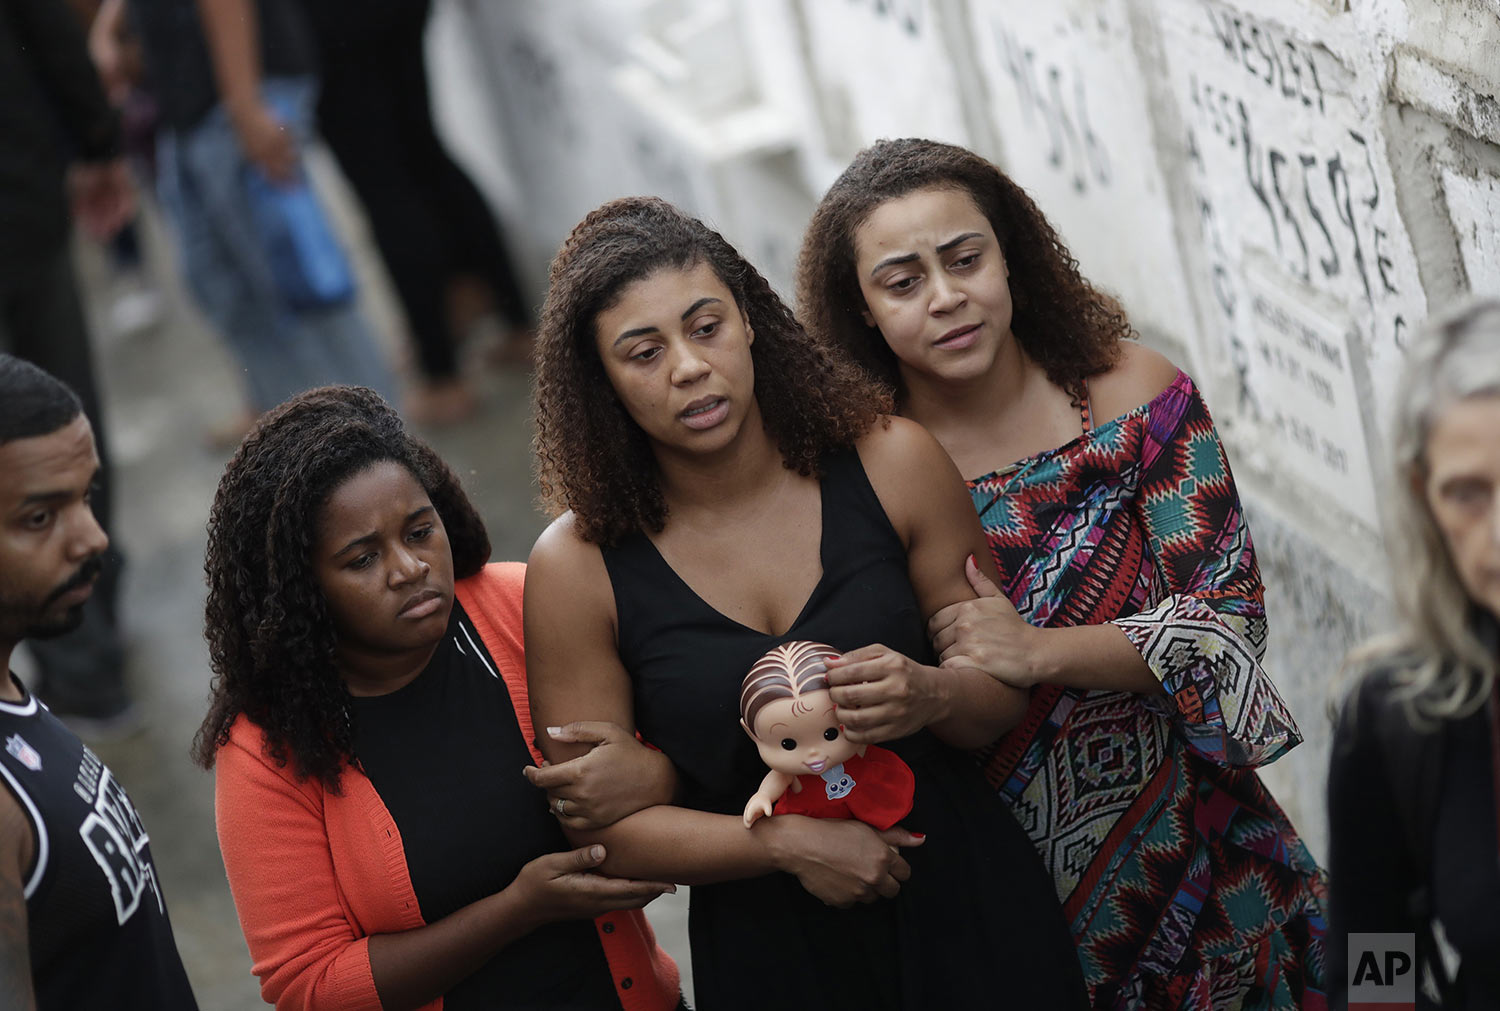 Vanessa Francisco Sales holds the doll of her 8-year-old daughter Ágatha Sales Felix during her daughter's burial at the cemetery in Rio de Janeiro, Brazil, Sunday, Sept. 22, 2019. Félix was hit by a stray bullet Friday amid what police said was a shootout with suspected criminals. However, residents say there was no shootout, and blame police. (AP Photo/Silvia Izquierdo)